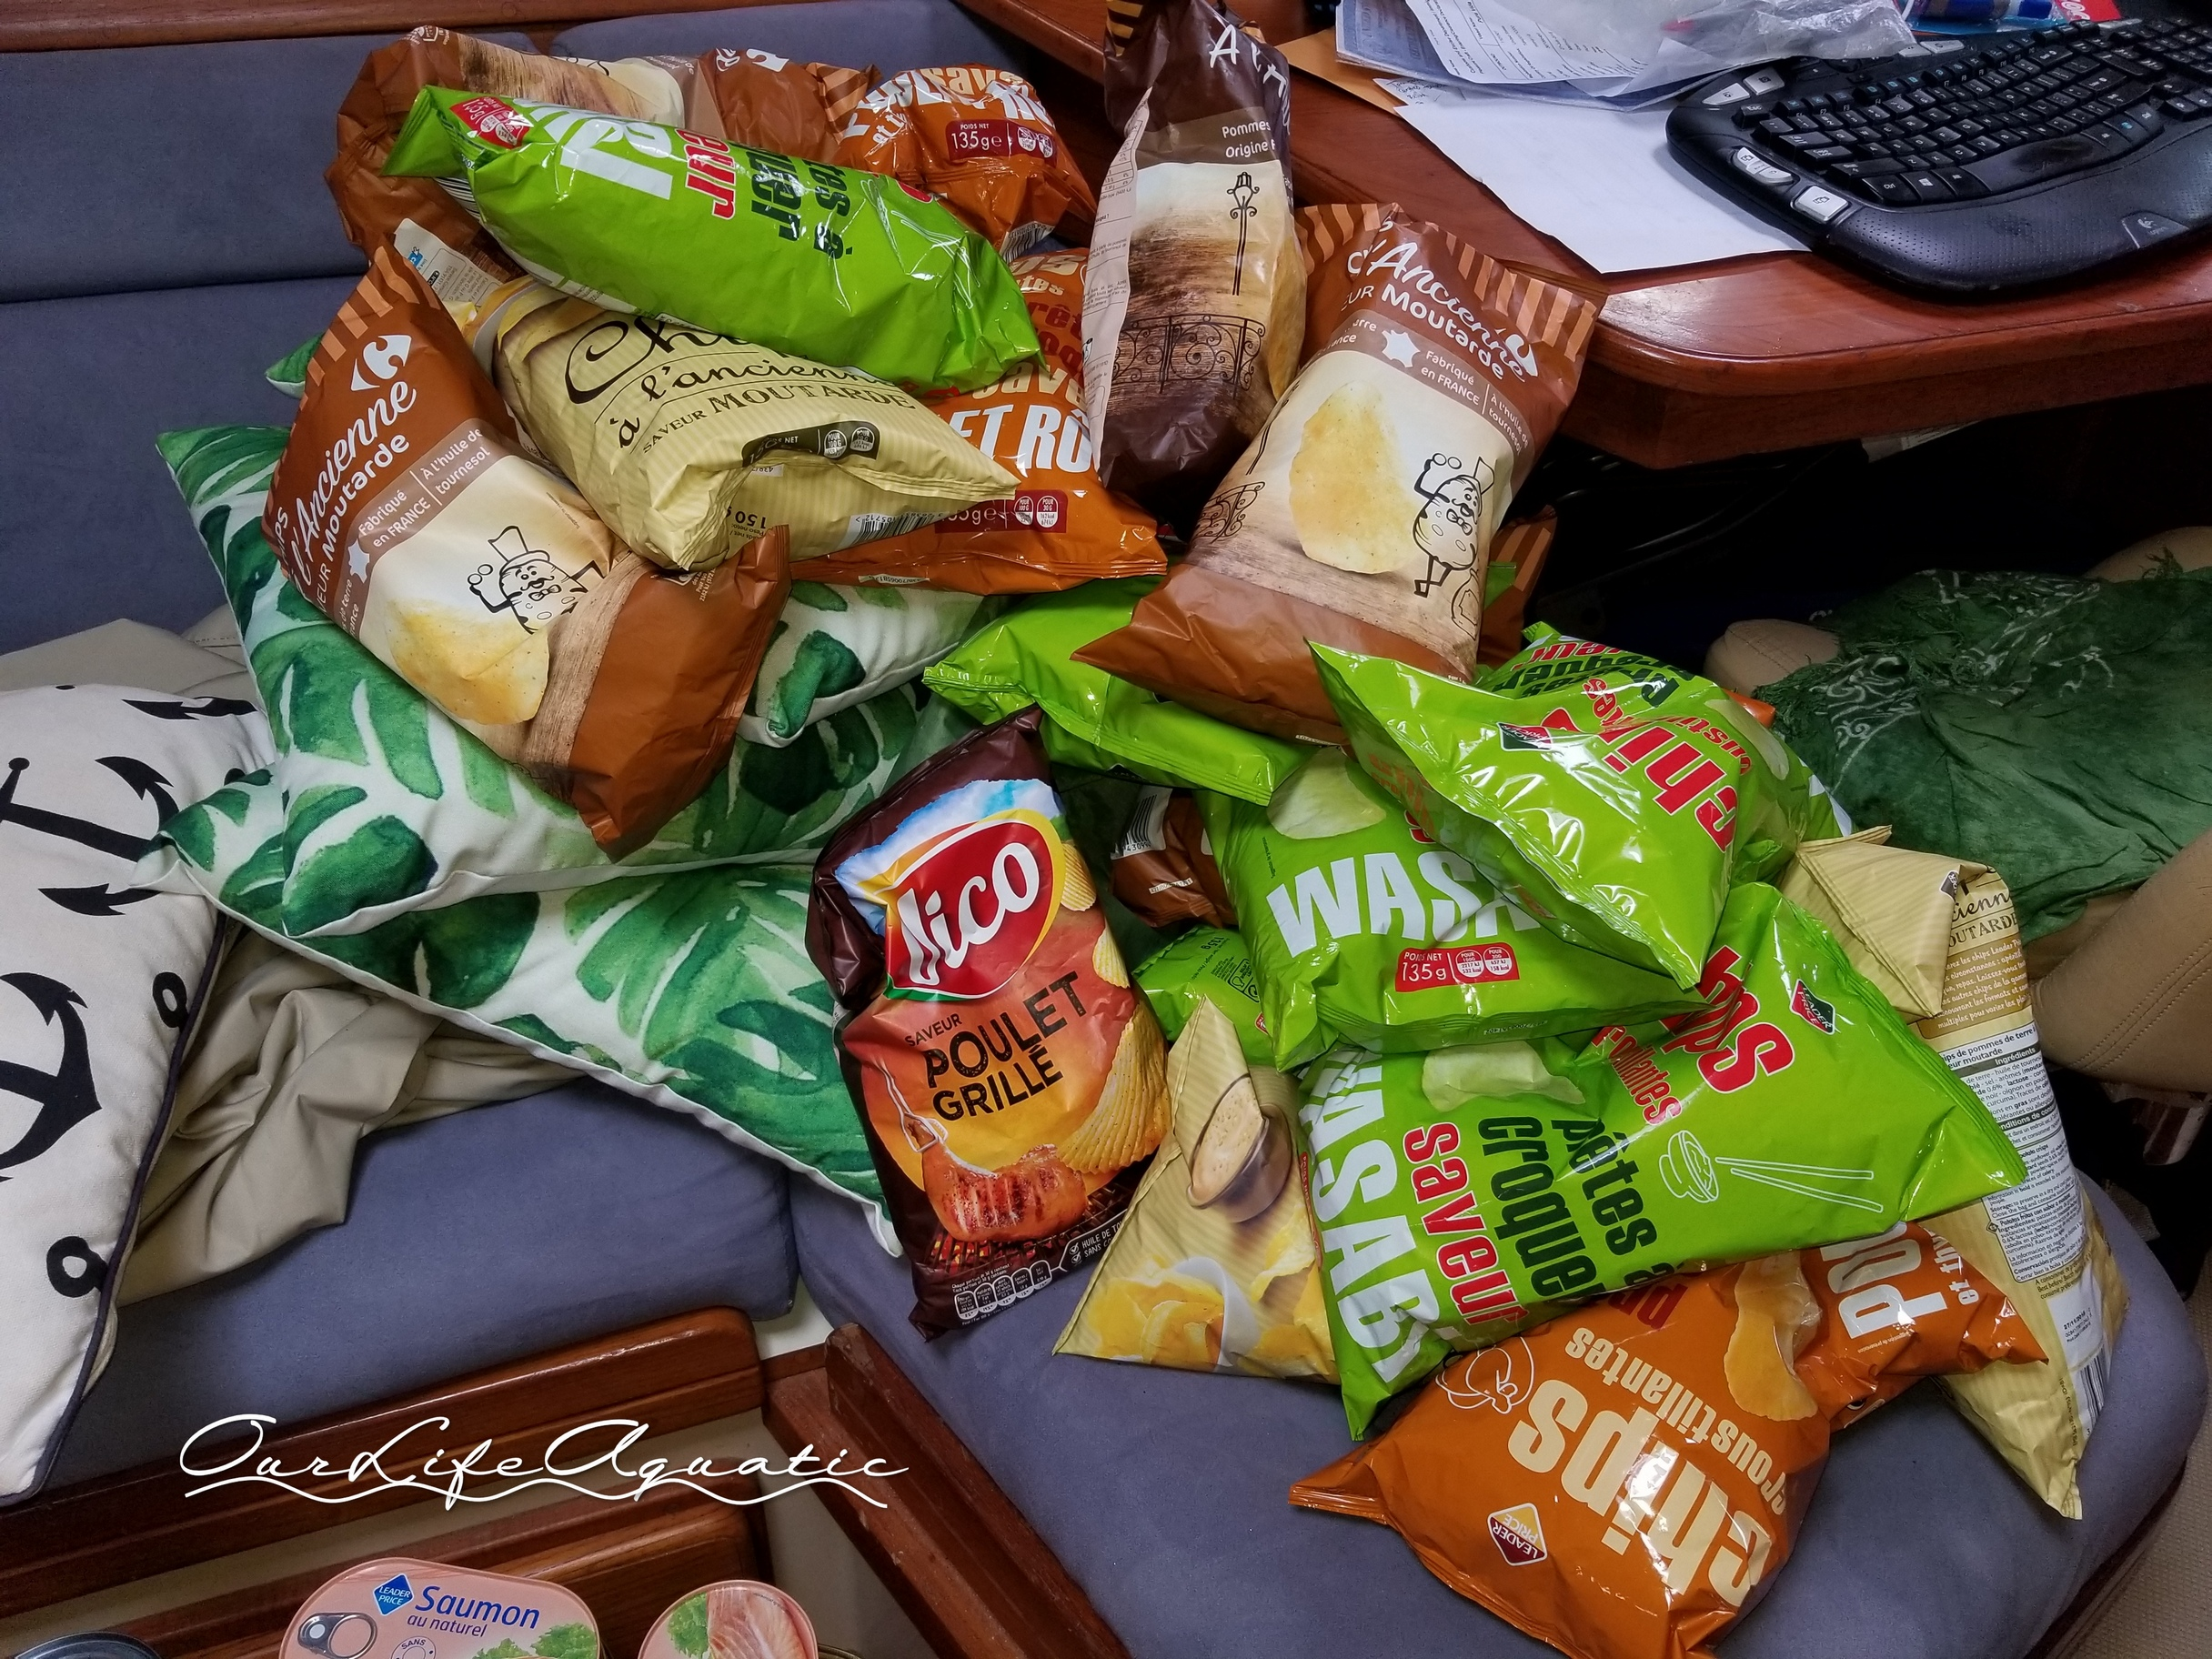 The French make the best flavored chips: Dijon mustard, roasted chicken, and wasabi